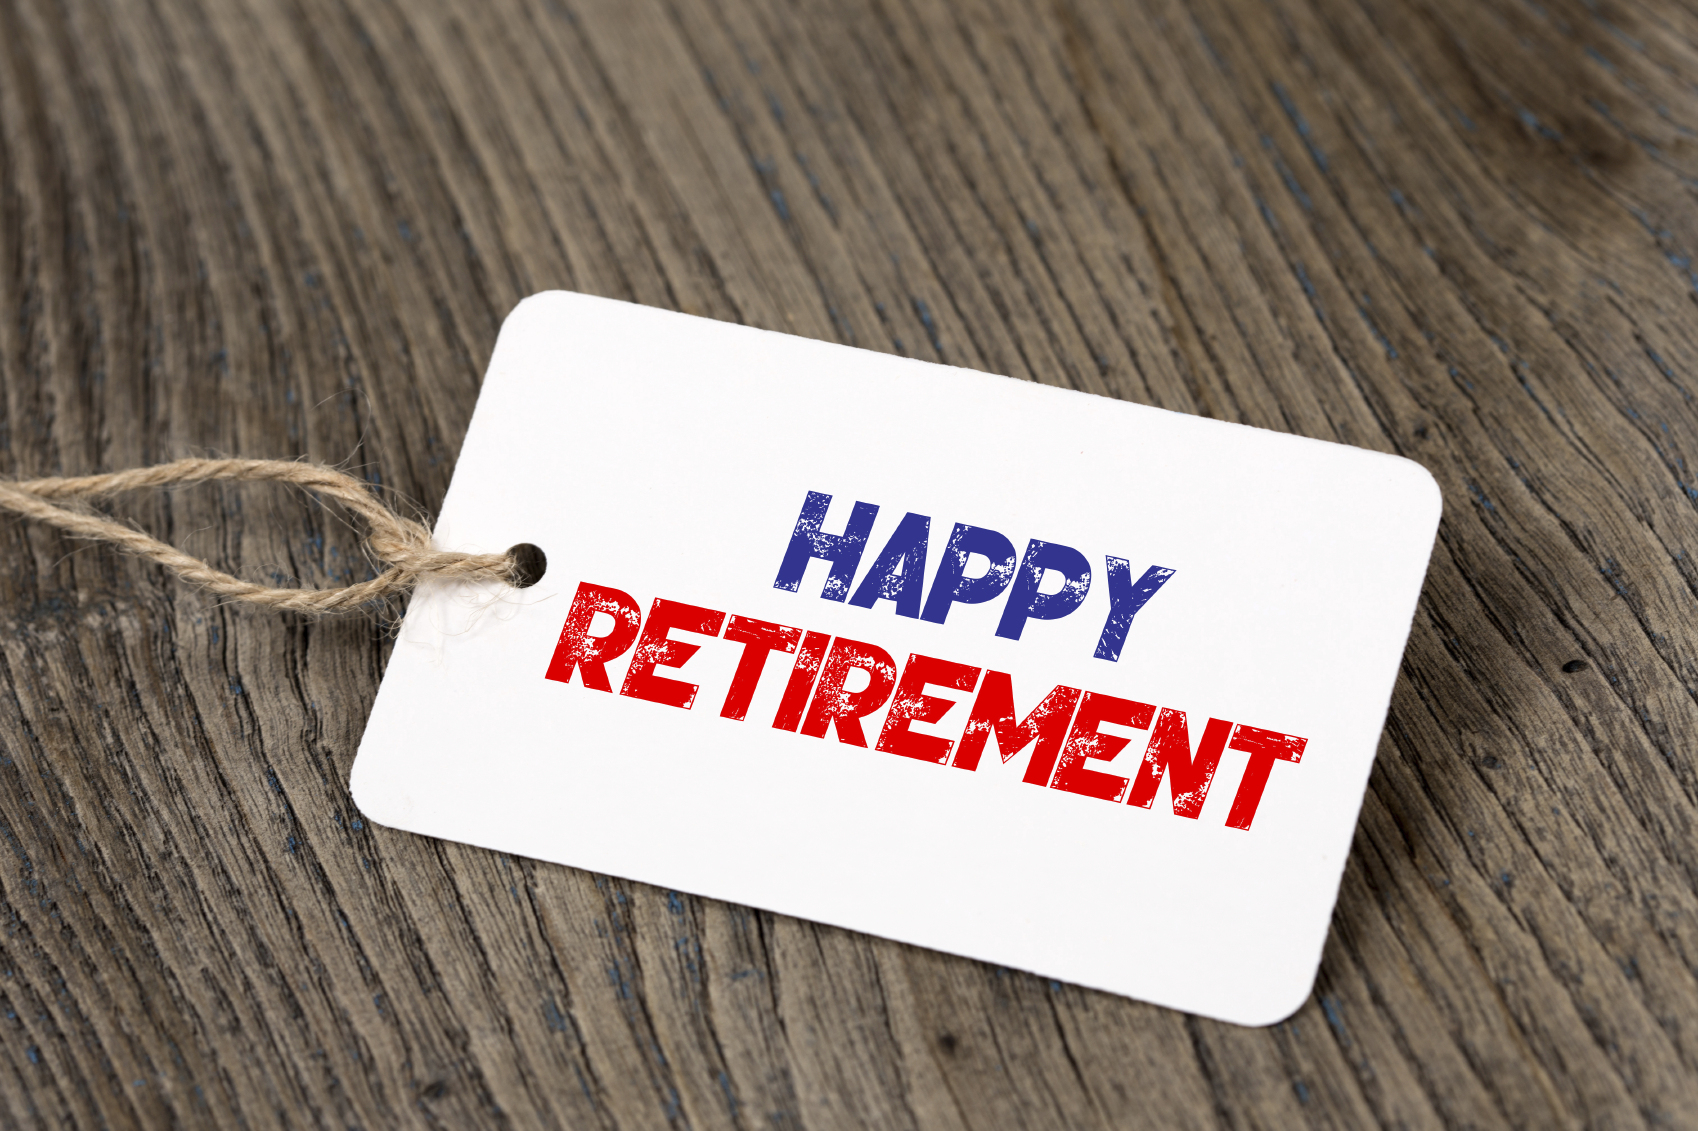 the joy of a rich retirement middot gallagher financial group the joy of a rich retirement posted by mitch posted in gallagher financial group